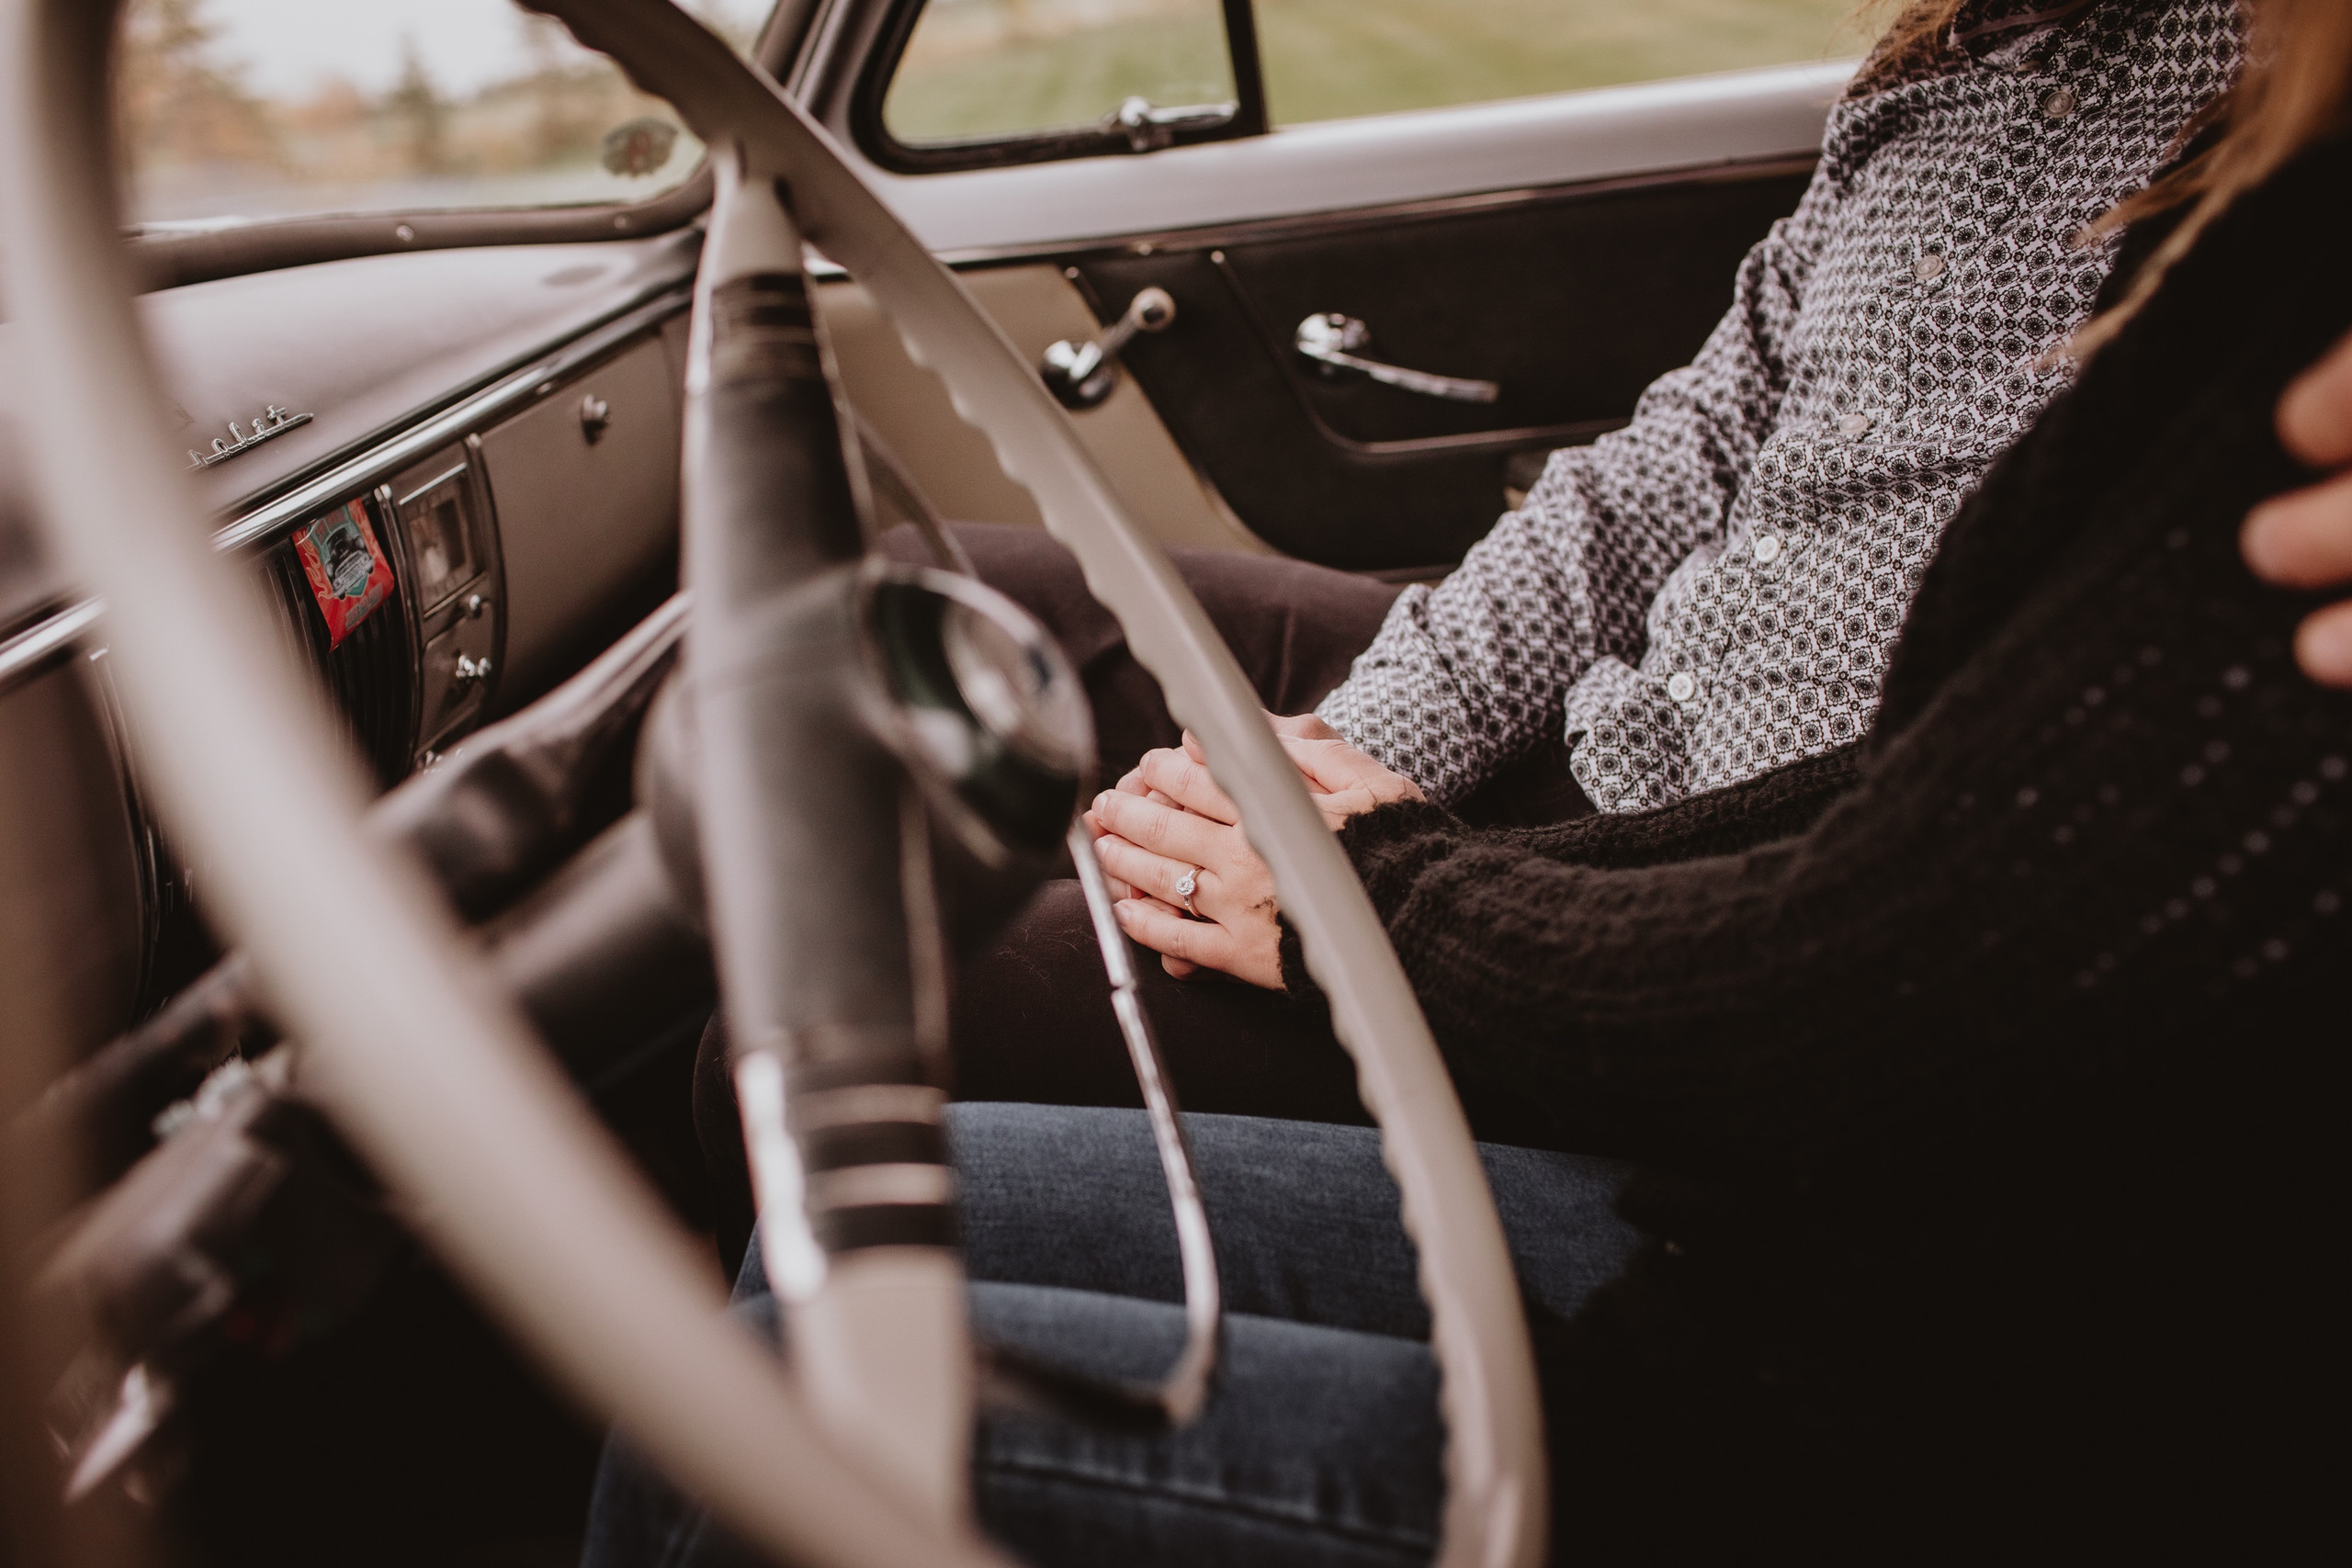 Couple's Engagement Ring seen as they sit in their restored vintage car.